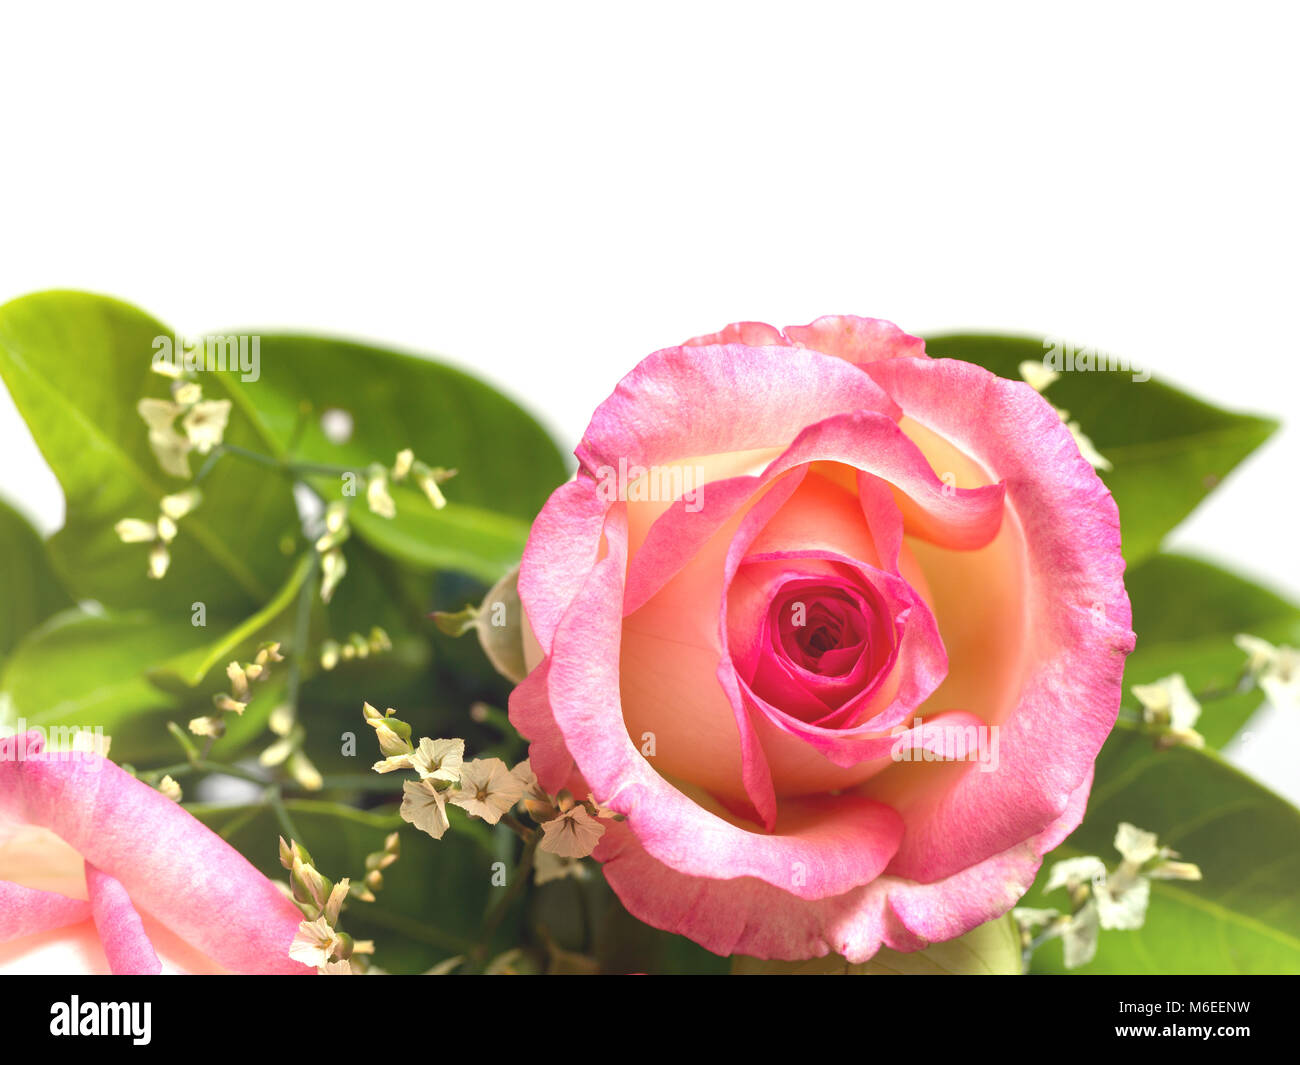 pink rose flower with green leaves and dew point (droplet) on white background (isolated background) - Stock Image